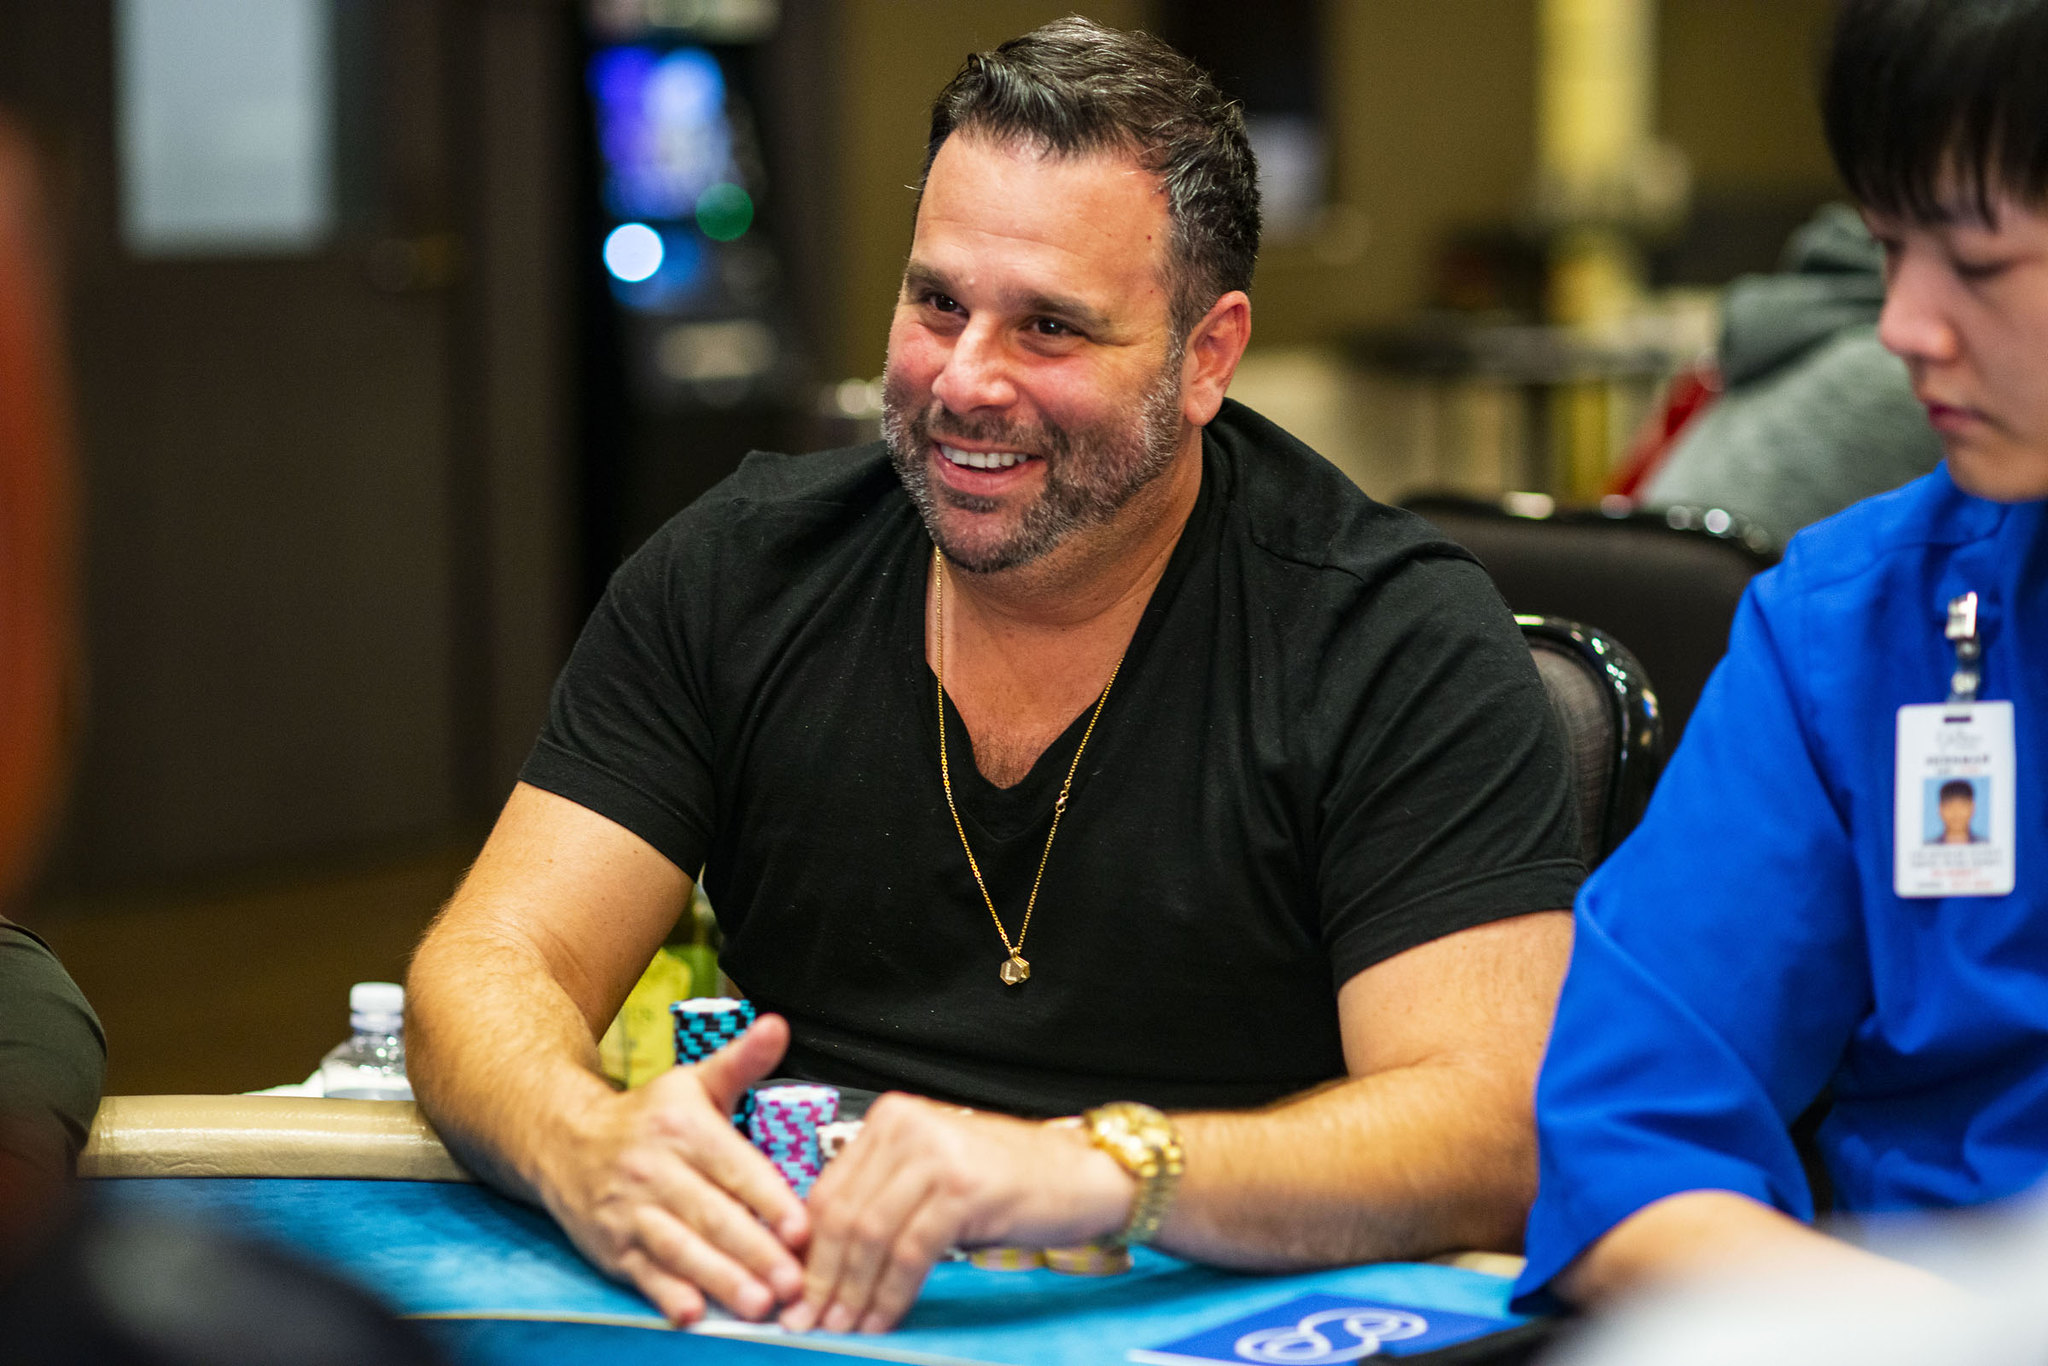 World Poker Tour On Twitter To Be Chip Leader For Me Is Like The High Of All Highs People Don T Realize How Important This Is To Me Randall Emmett Leads Wptgardens